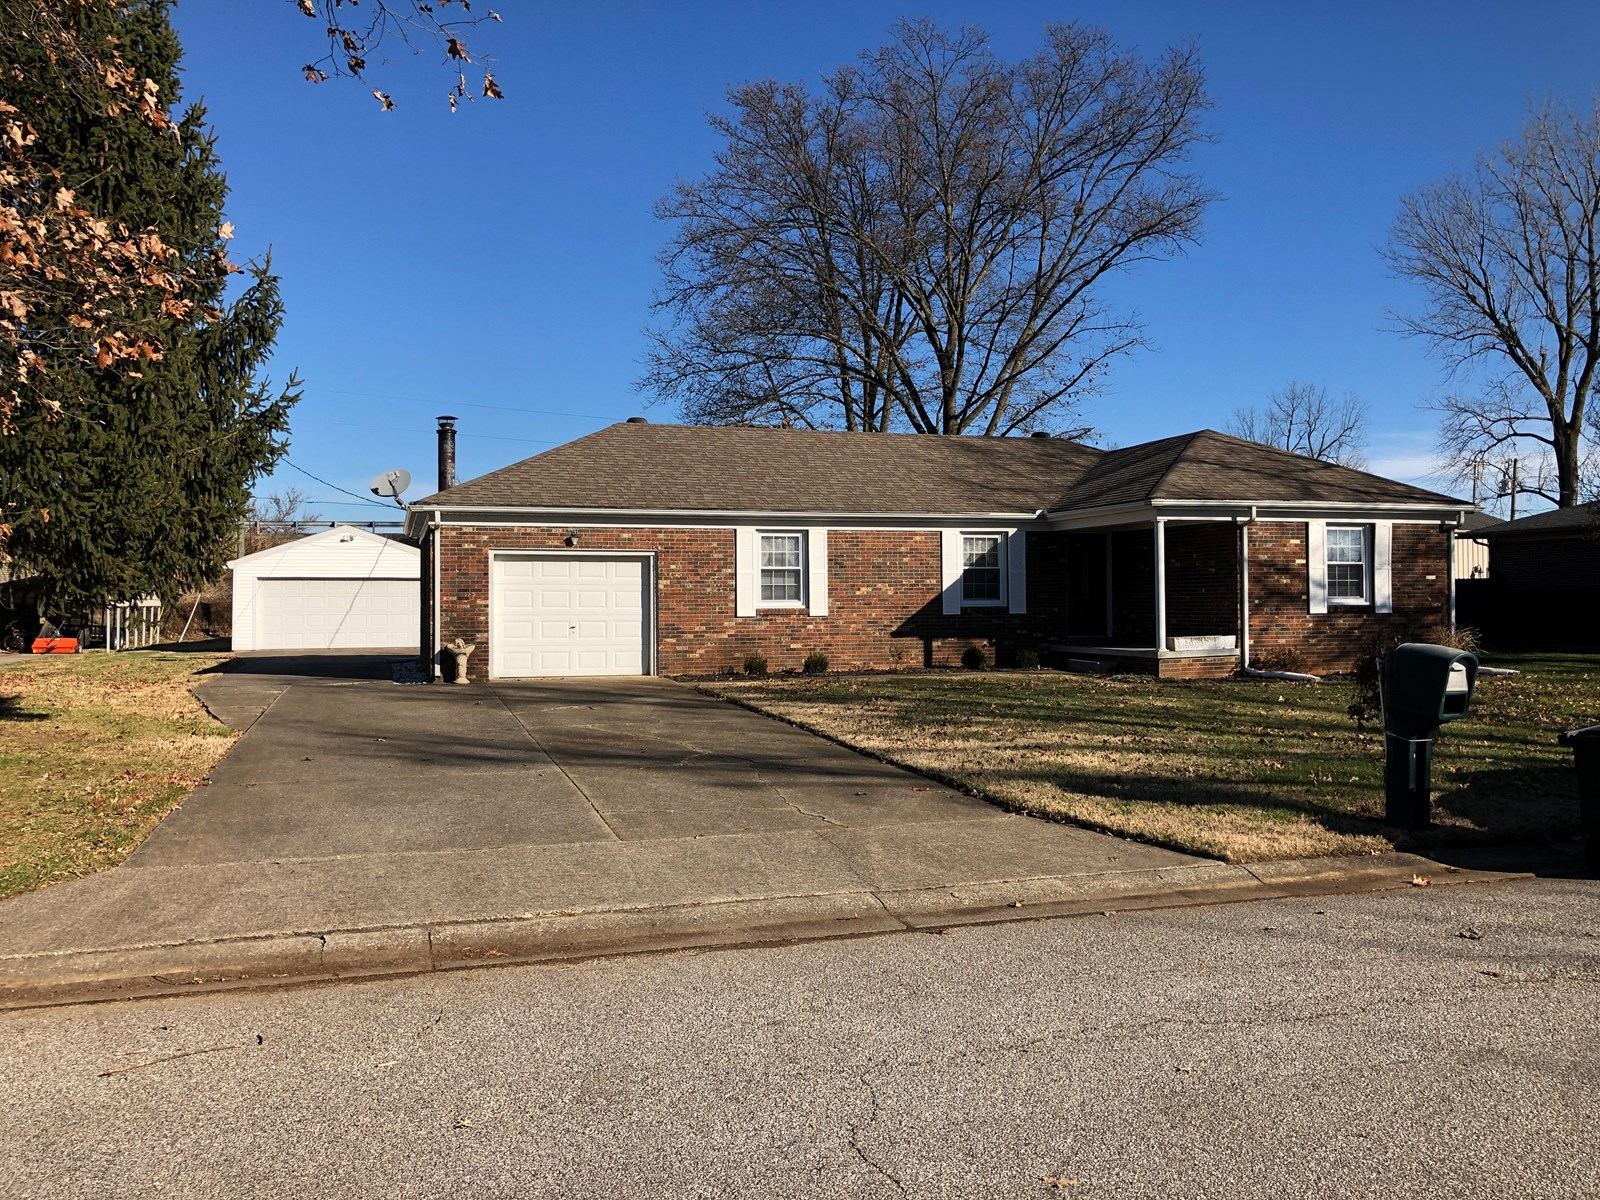 3 Bedroom Brick Home for Sale KY